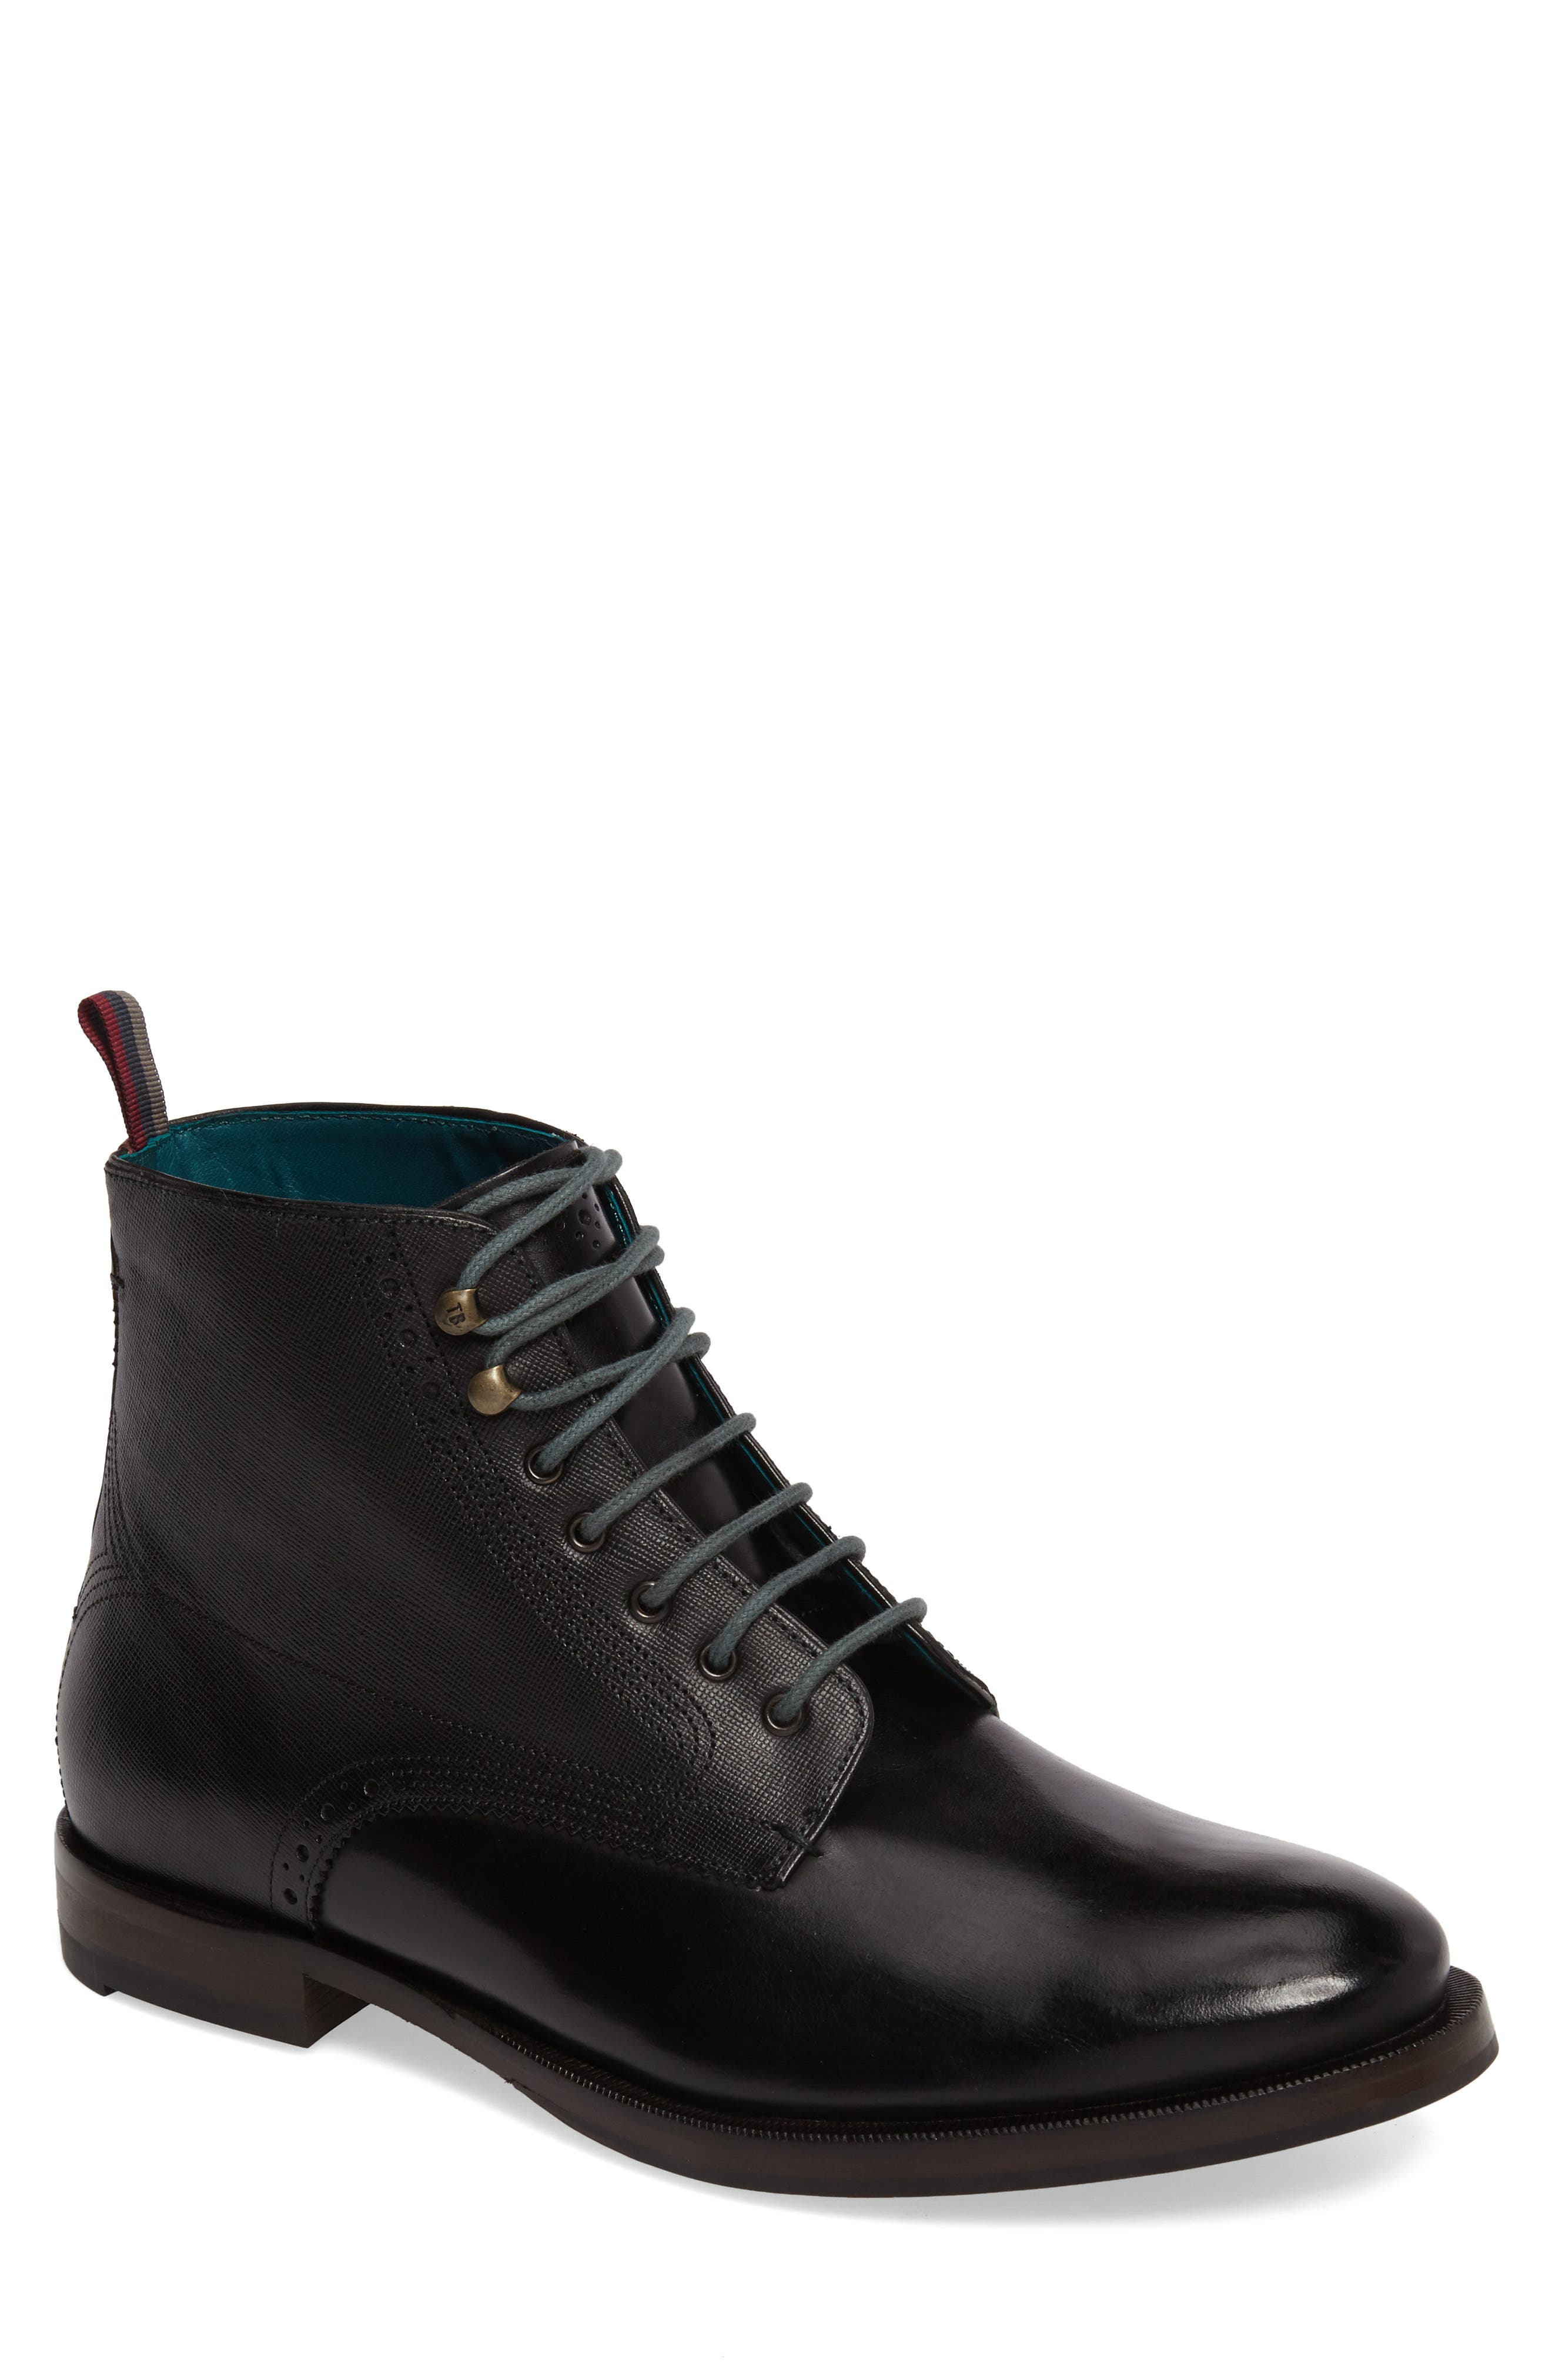 Dhavin Embossed Boot,                         Main,                         color, Black Leather